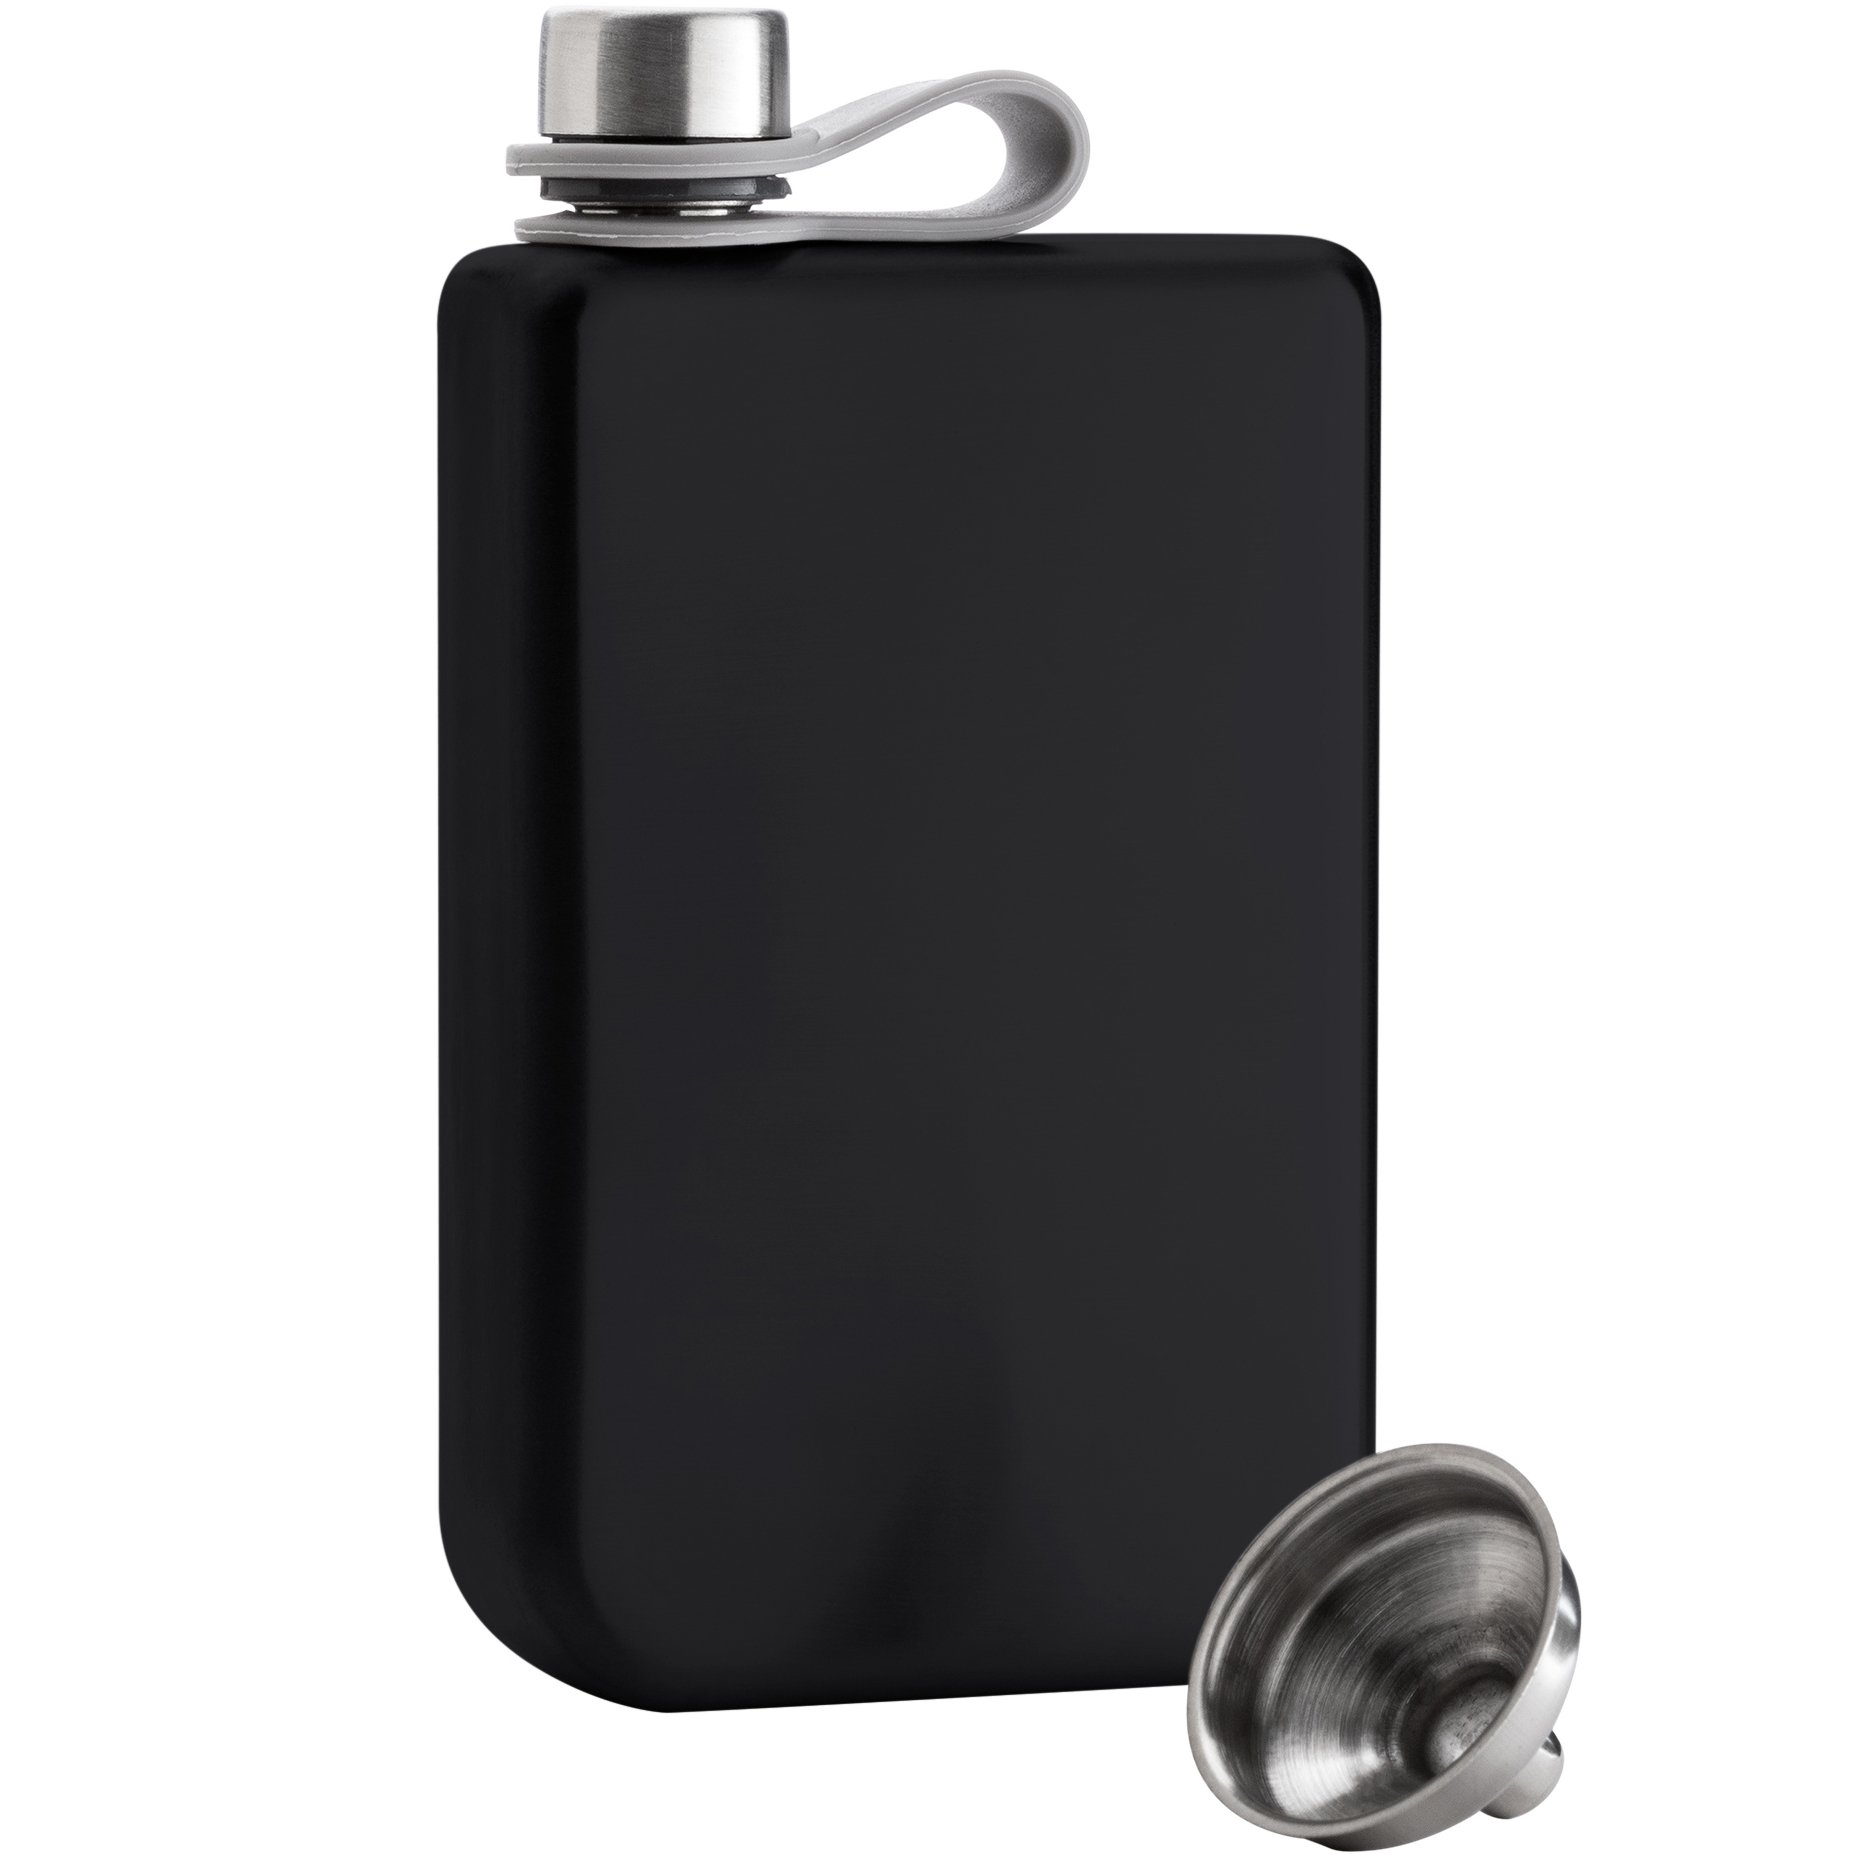 8oz Hip Flask & Funnel Set Stainless Steel Pocket Container for Drinking Liquor e.g. Whiskey, Rum, Scotch, Vodka | Rust & Leak Proof Discreet Alcohol Canteen, can be Engraved